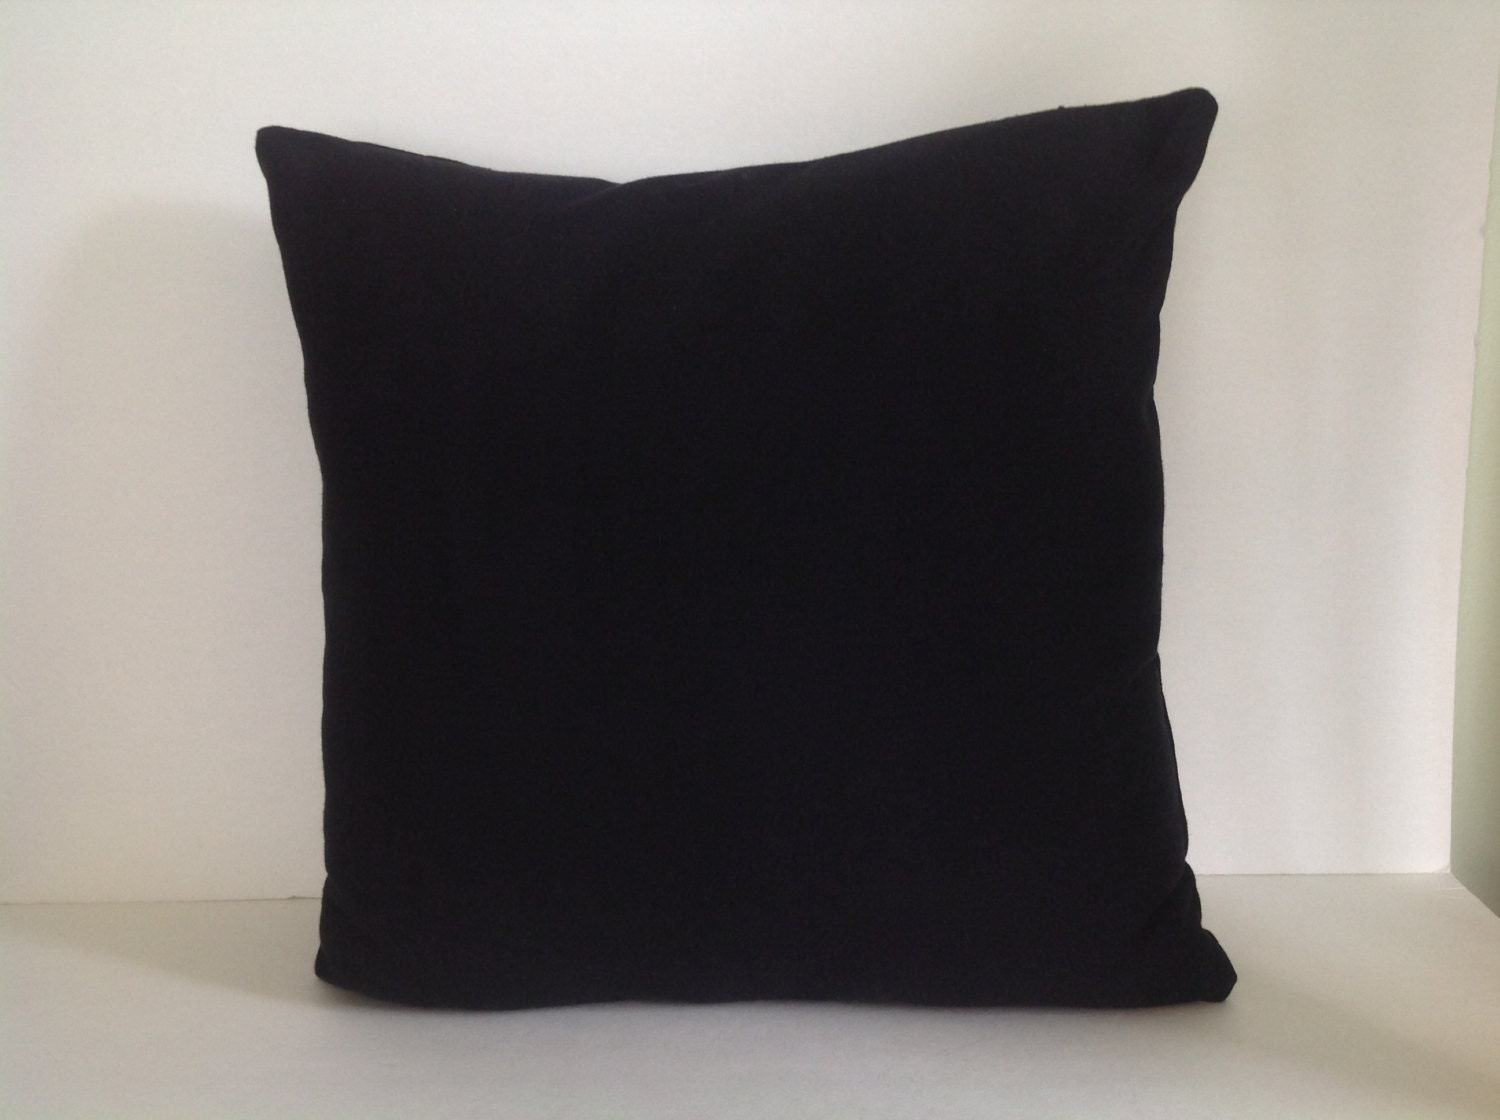 Blank Decorative Pillow Covers : Black canvas pillow cover blank throw pillow cover diy